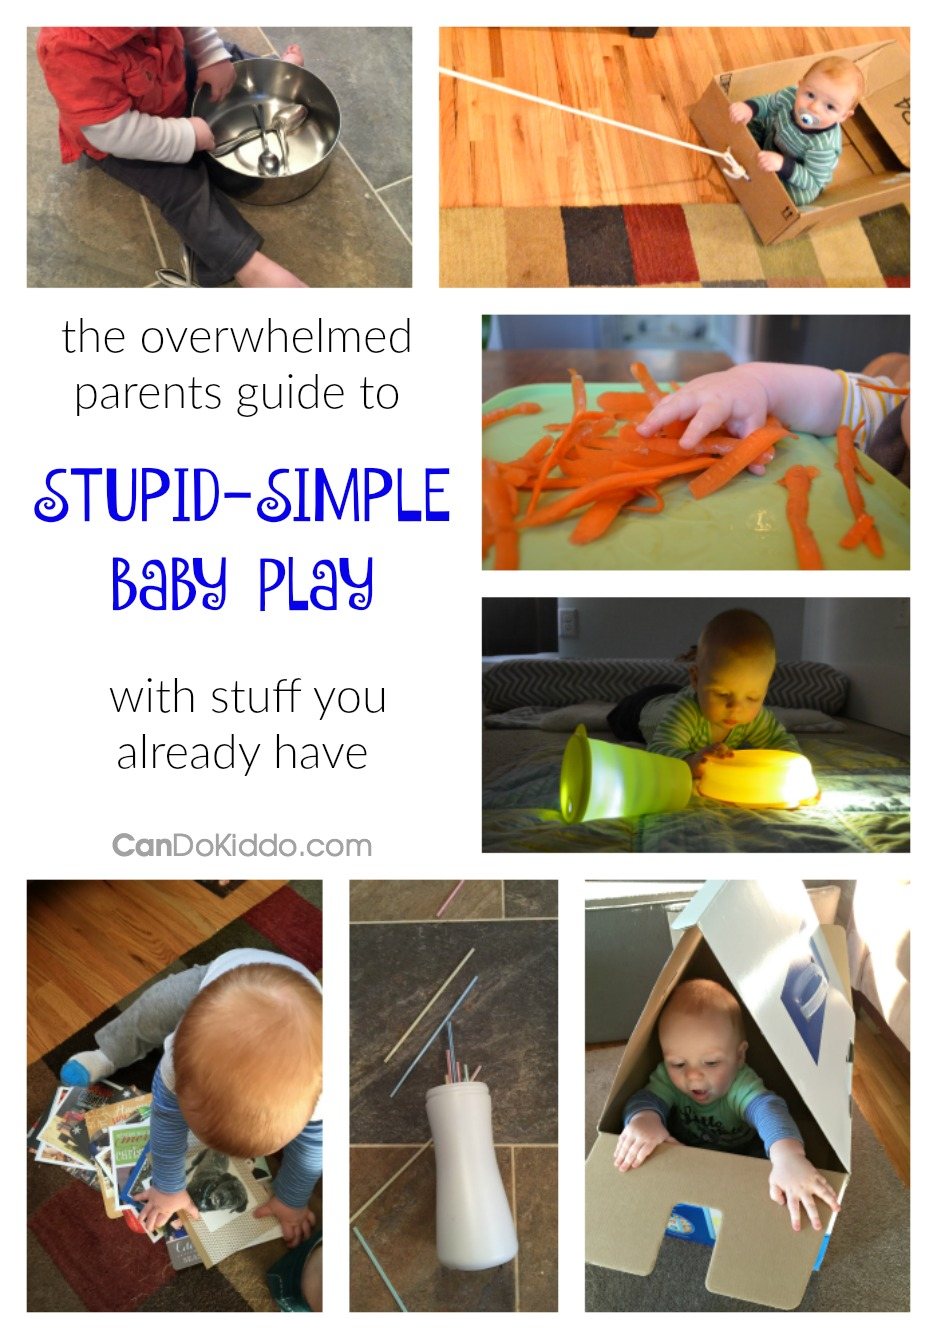 Stop the Pinterest Baby Play Paralysis! Stupid-Simple Play ideas. CanDoKiddo.com